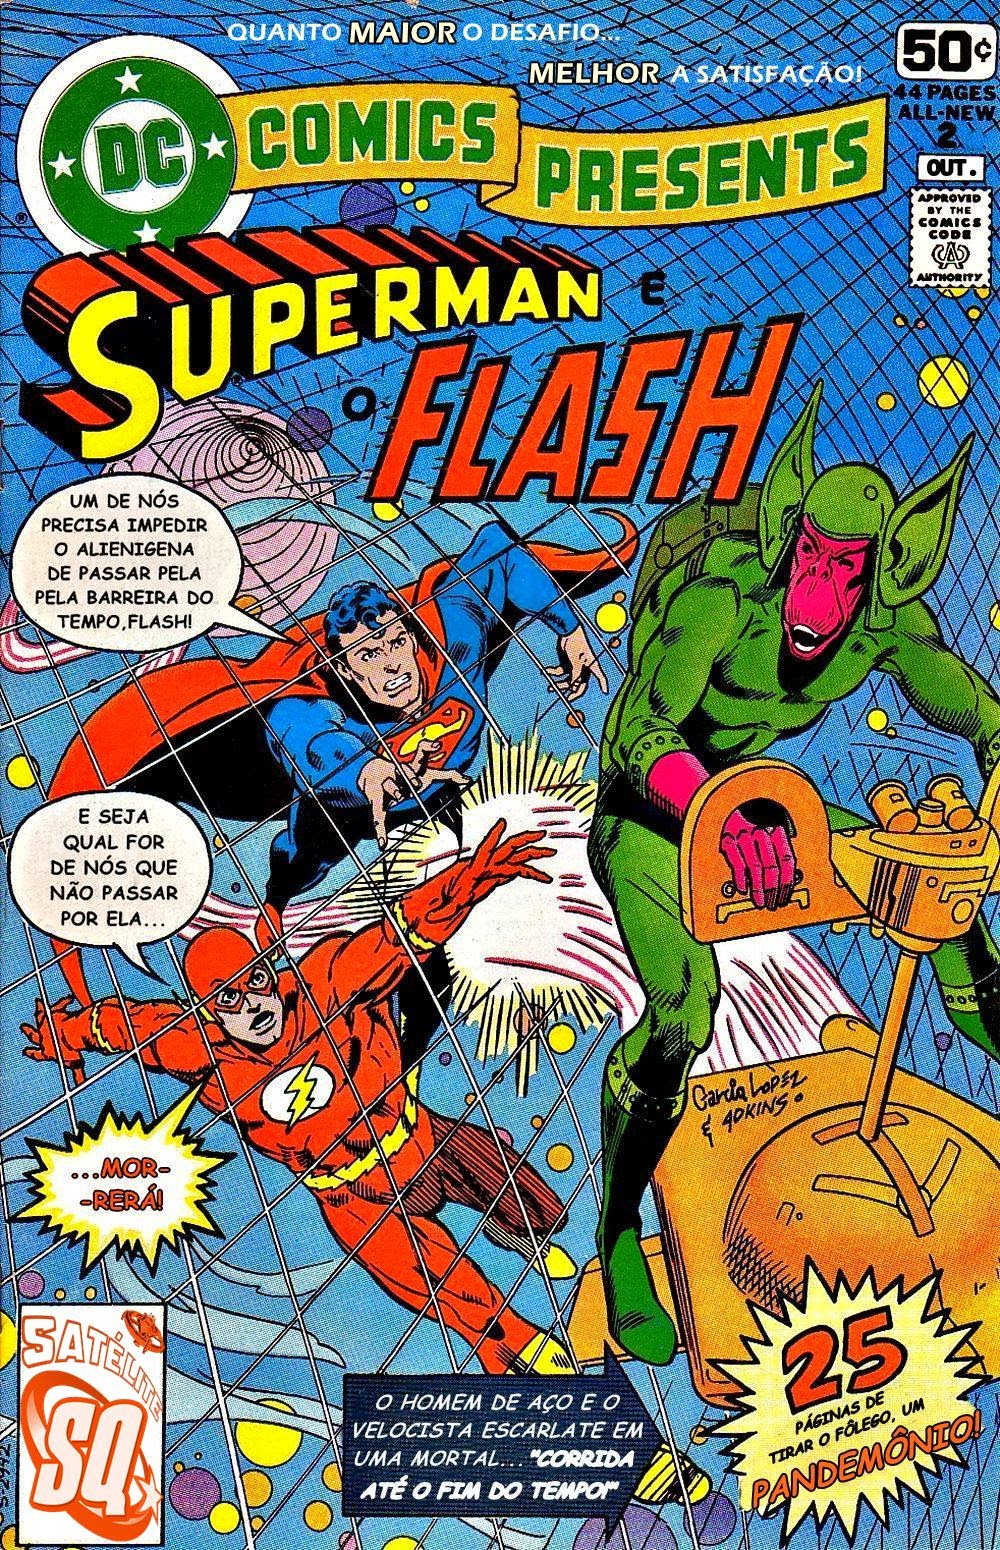 SUPERMAN E FLASH (DC COMICS PRESENTS SUPERMAN AND FLASH)